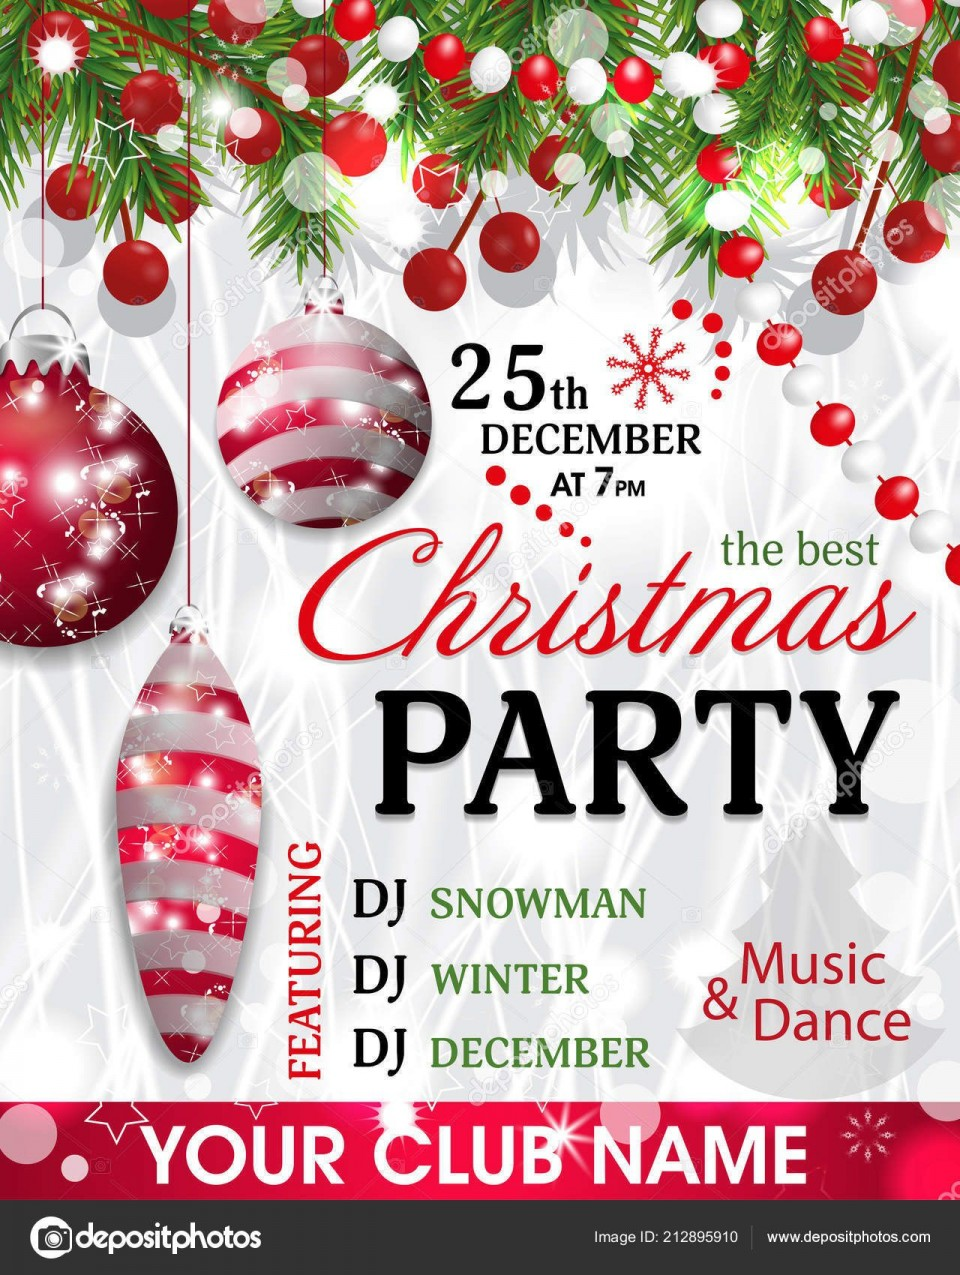 005 Unbelievable Christma Party Invitation Template Design  Holiday Download Free Psd960